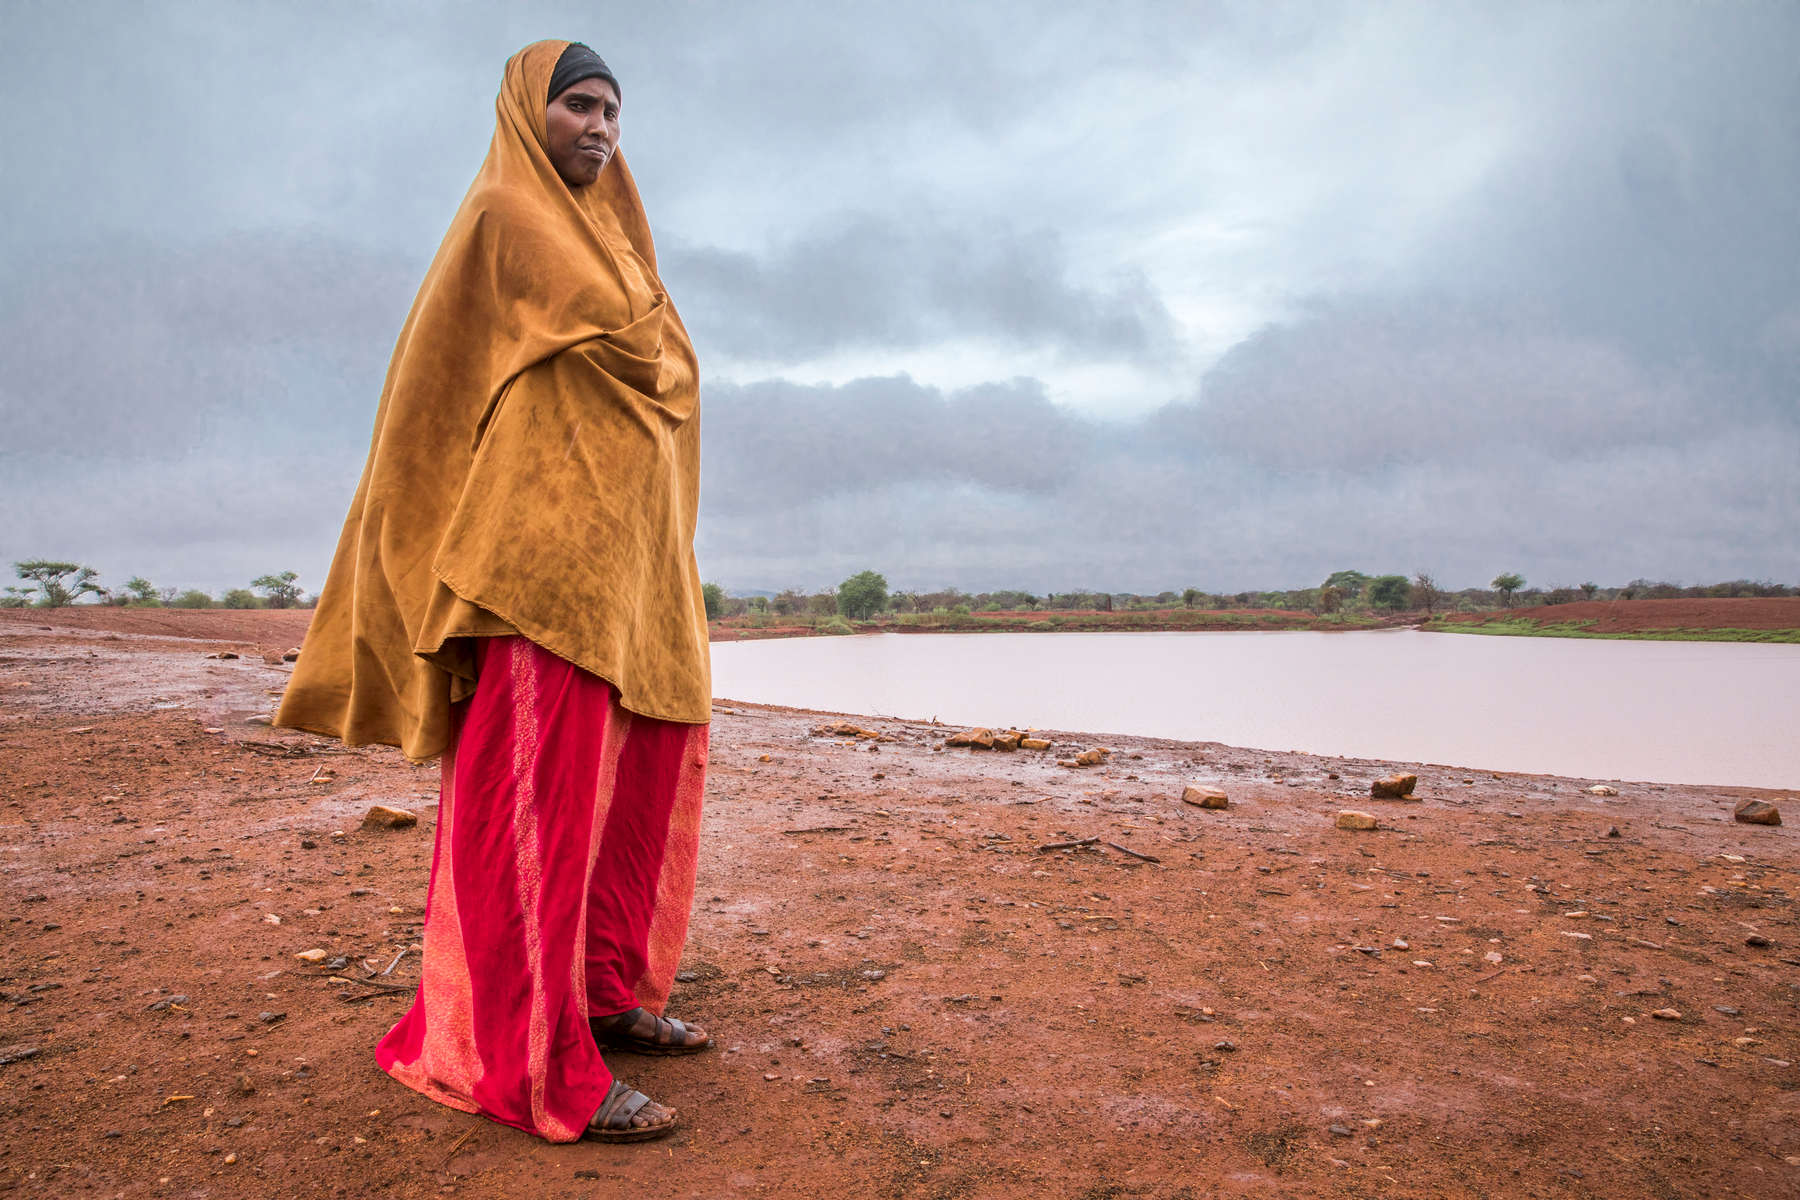 Kaltuma Sheikh Abdullahi, 30, stares out at a reclaimed reservoir in Anole, a small village about 85 km northeast of Wajir. Mercy Corps helped expand the reservoir so the community could get through the drought that has been punishing the region. Mercy Corps also helped to set up an system to control animal access to the water so to avoid disease and fouling of the water. With a pastoral economy based on herding livestock, Kaltuma and her neighbors feel every twitch of the climate, and lately, the rains have been all wrong. Previously the rains used to come twice a year: once at the beginning of the year and once at the end. Now the rains are less frequent and lighter. Sometimes it will be two years between rains, and although it had rained the night before Mercy Corps visited the village, turning the packed dirt roads to muddy rivers (the first rain since the end of November), it was only one day, and it's not enough to do much against a four-year drought. To help communities like Kaltuma's 30 adapt to climate change, Mercy Corps has conducted awareness campaigns on how to protect natural resources.